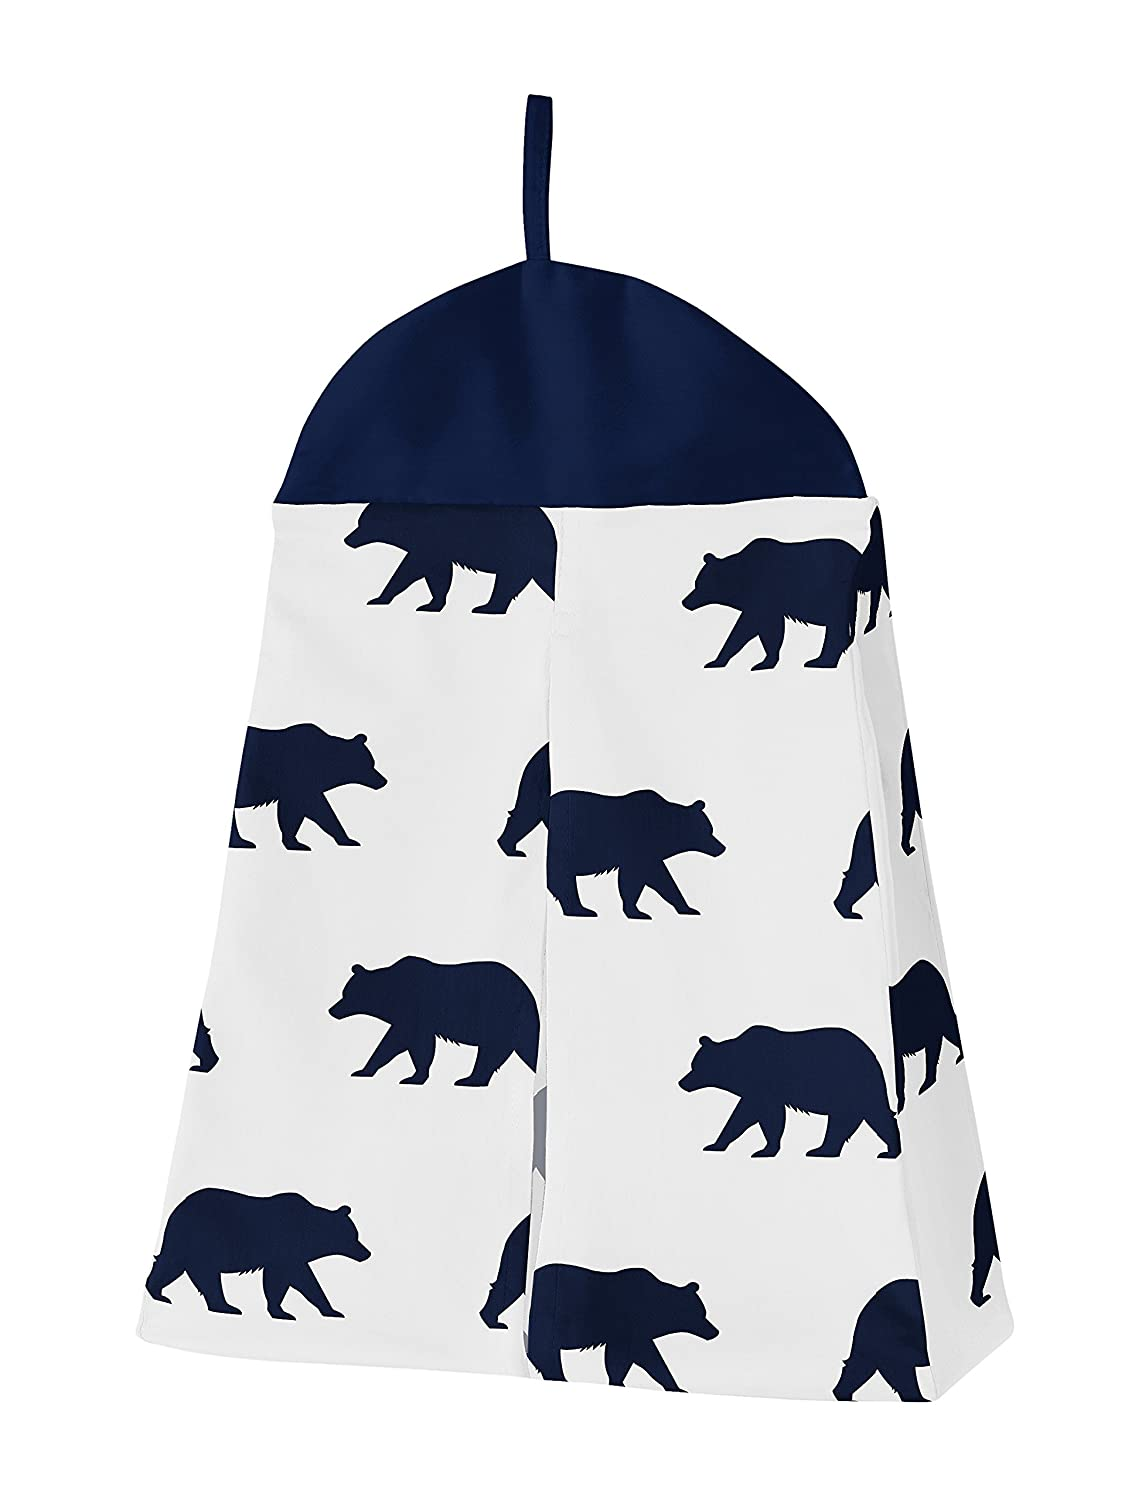 Gold 4 Pieces and White Patchwork Big Bear Boy Baby Crib Bedding Set Without Bumper by Sweet JoJo Designs Navy Blue